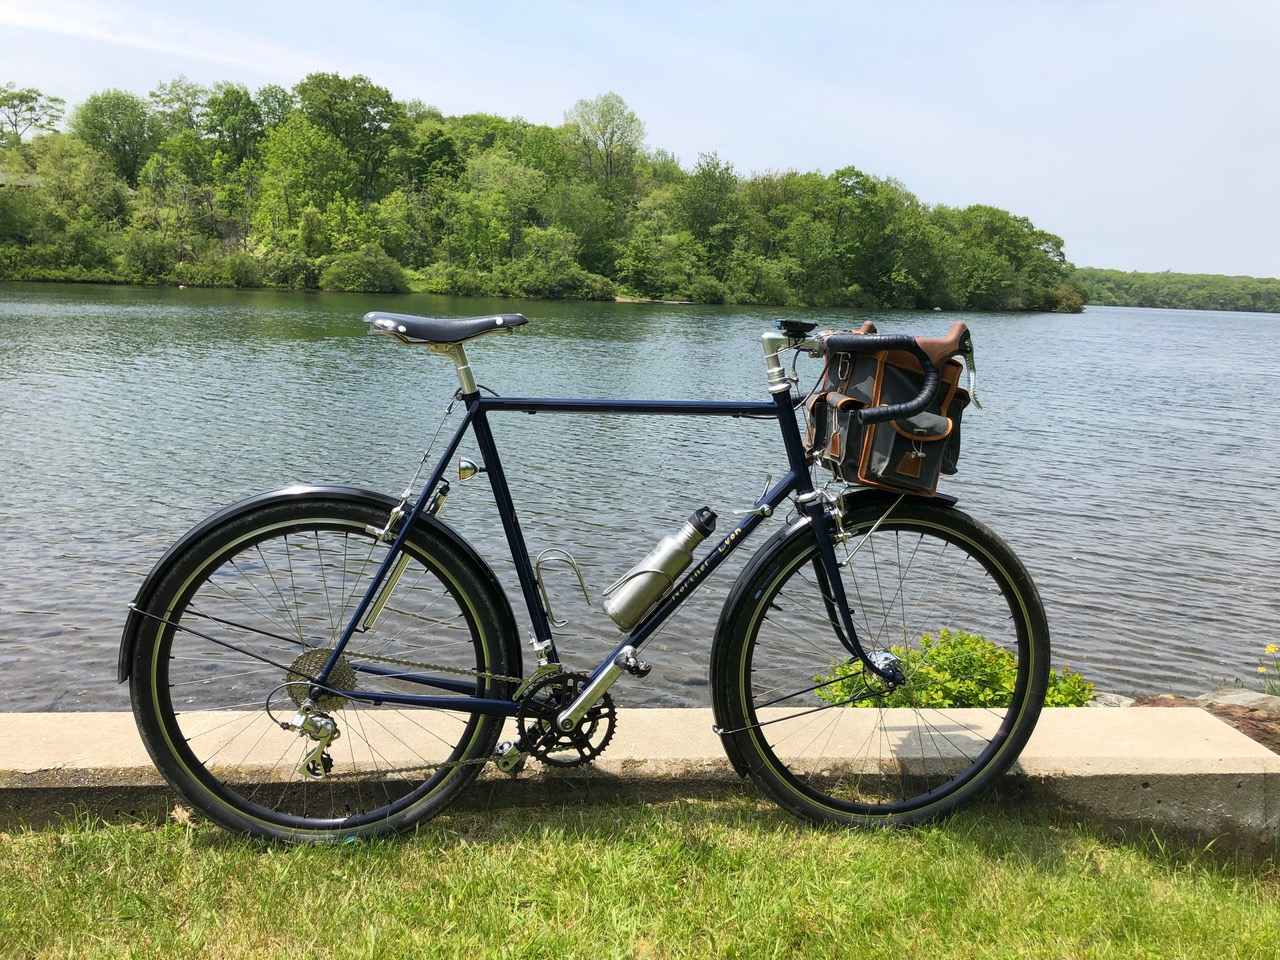 Just took a 55 mile shakedown ride. I love the bike—it's everything I hoped it would be and then some! —Even E.